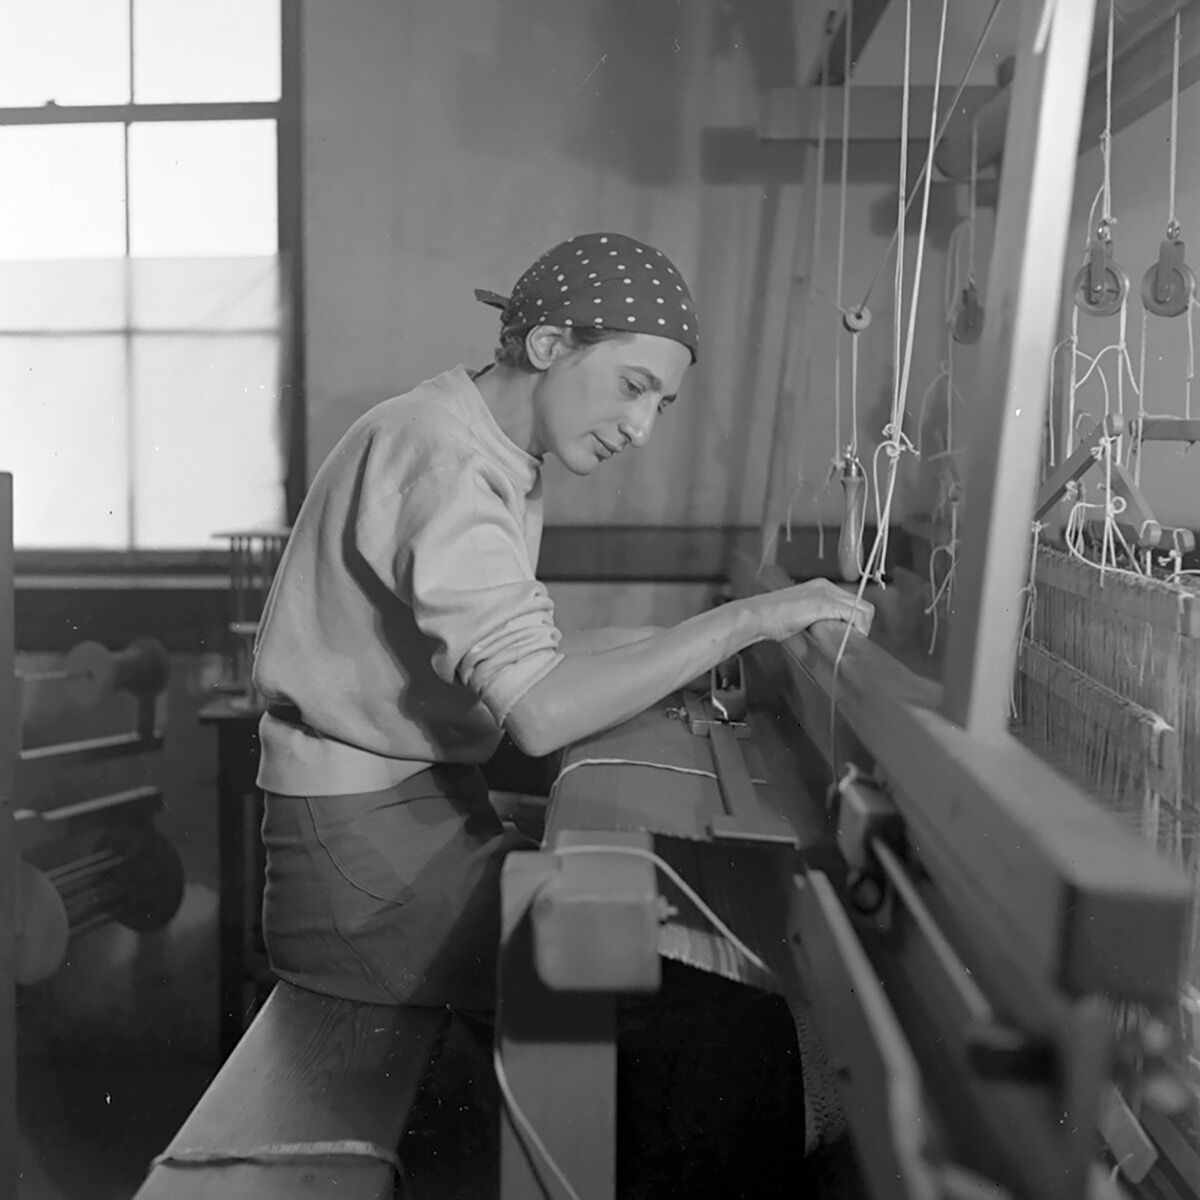 Anni Albers, Anni Albers in her weaving studio at Black Mountain College, 1937. © 2017 The Josef and Anni Albers Foundation / Artists Rights Society (ARS), New York. Courtesy of Guggenheim Museum Bilbao.